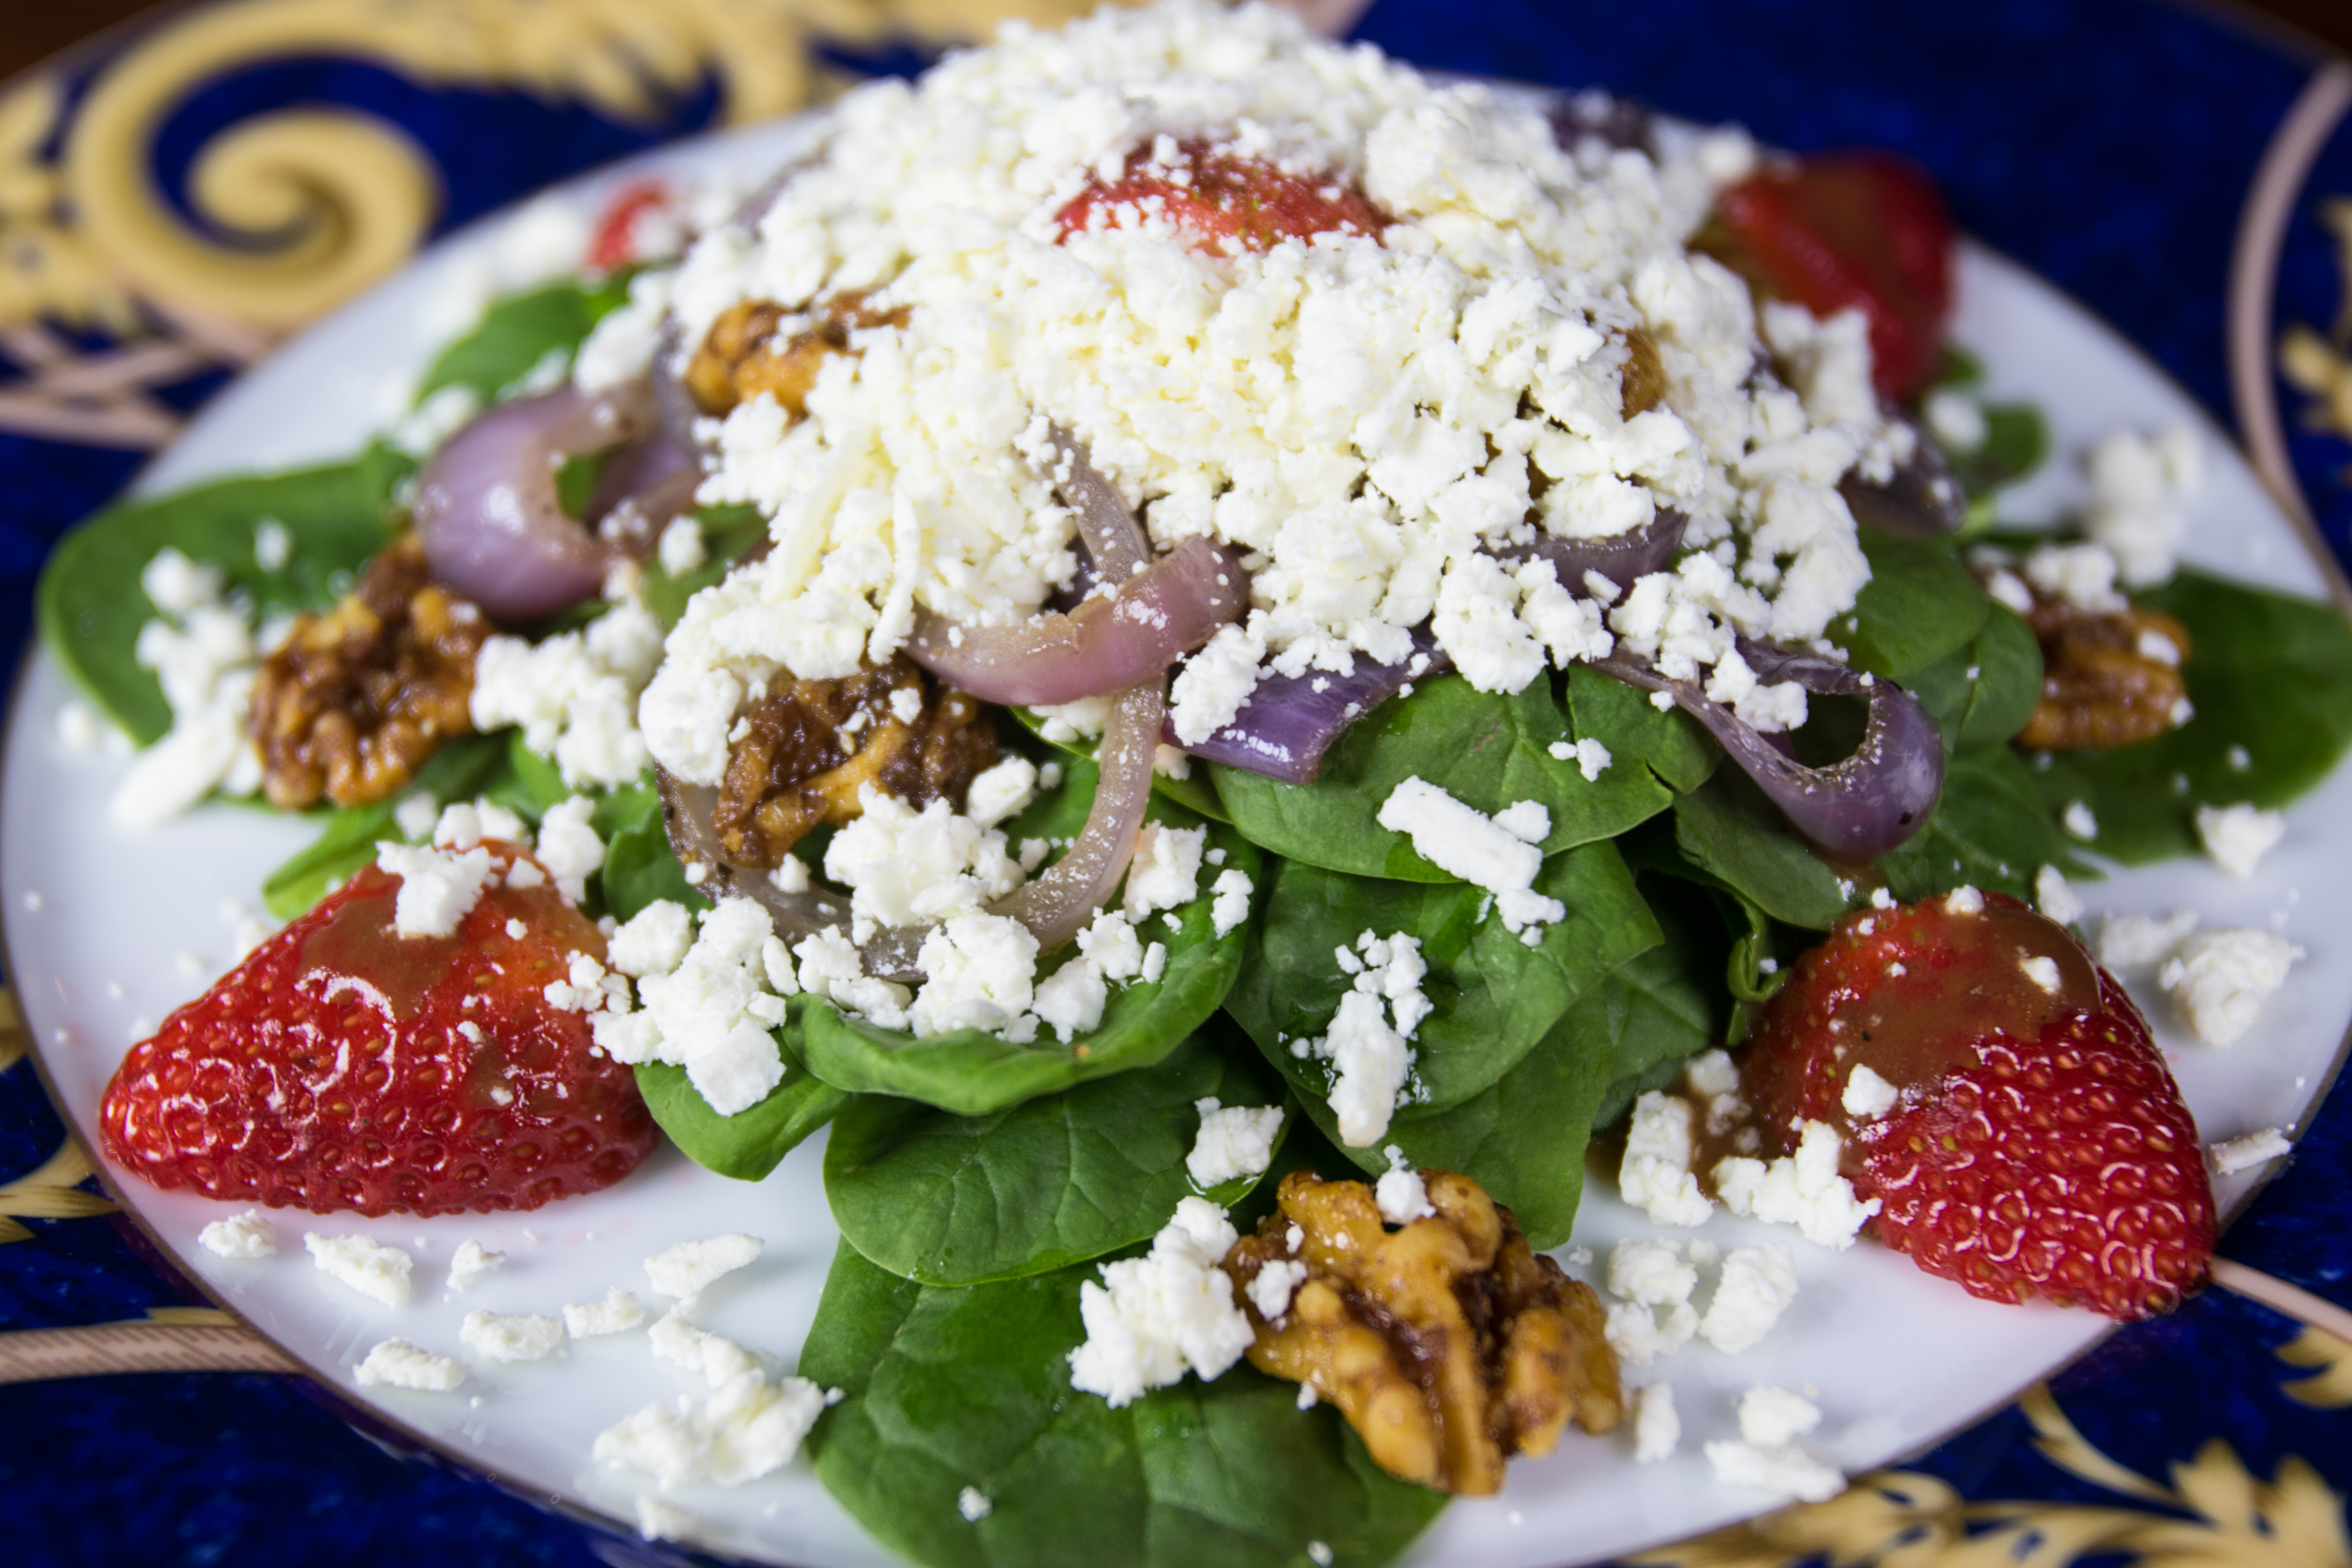 The Lodge Strawberry Spinach Salad